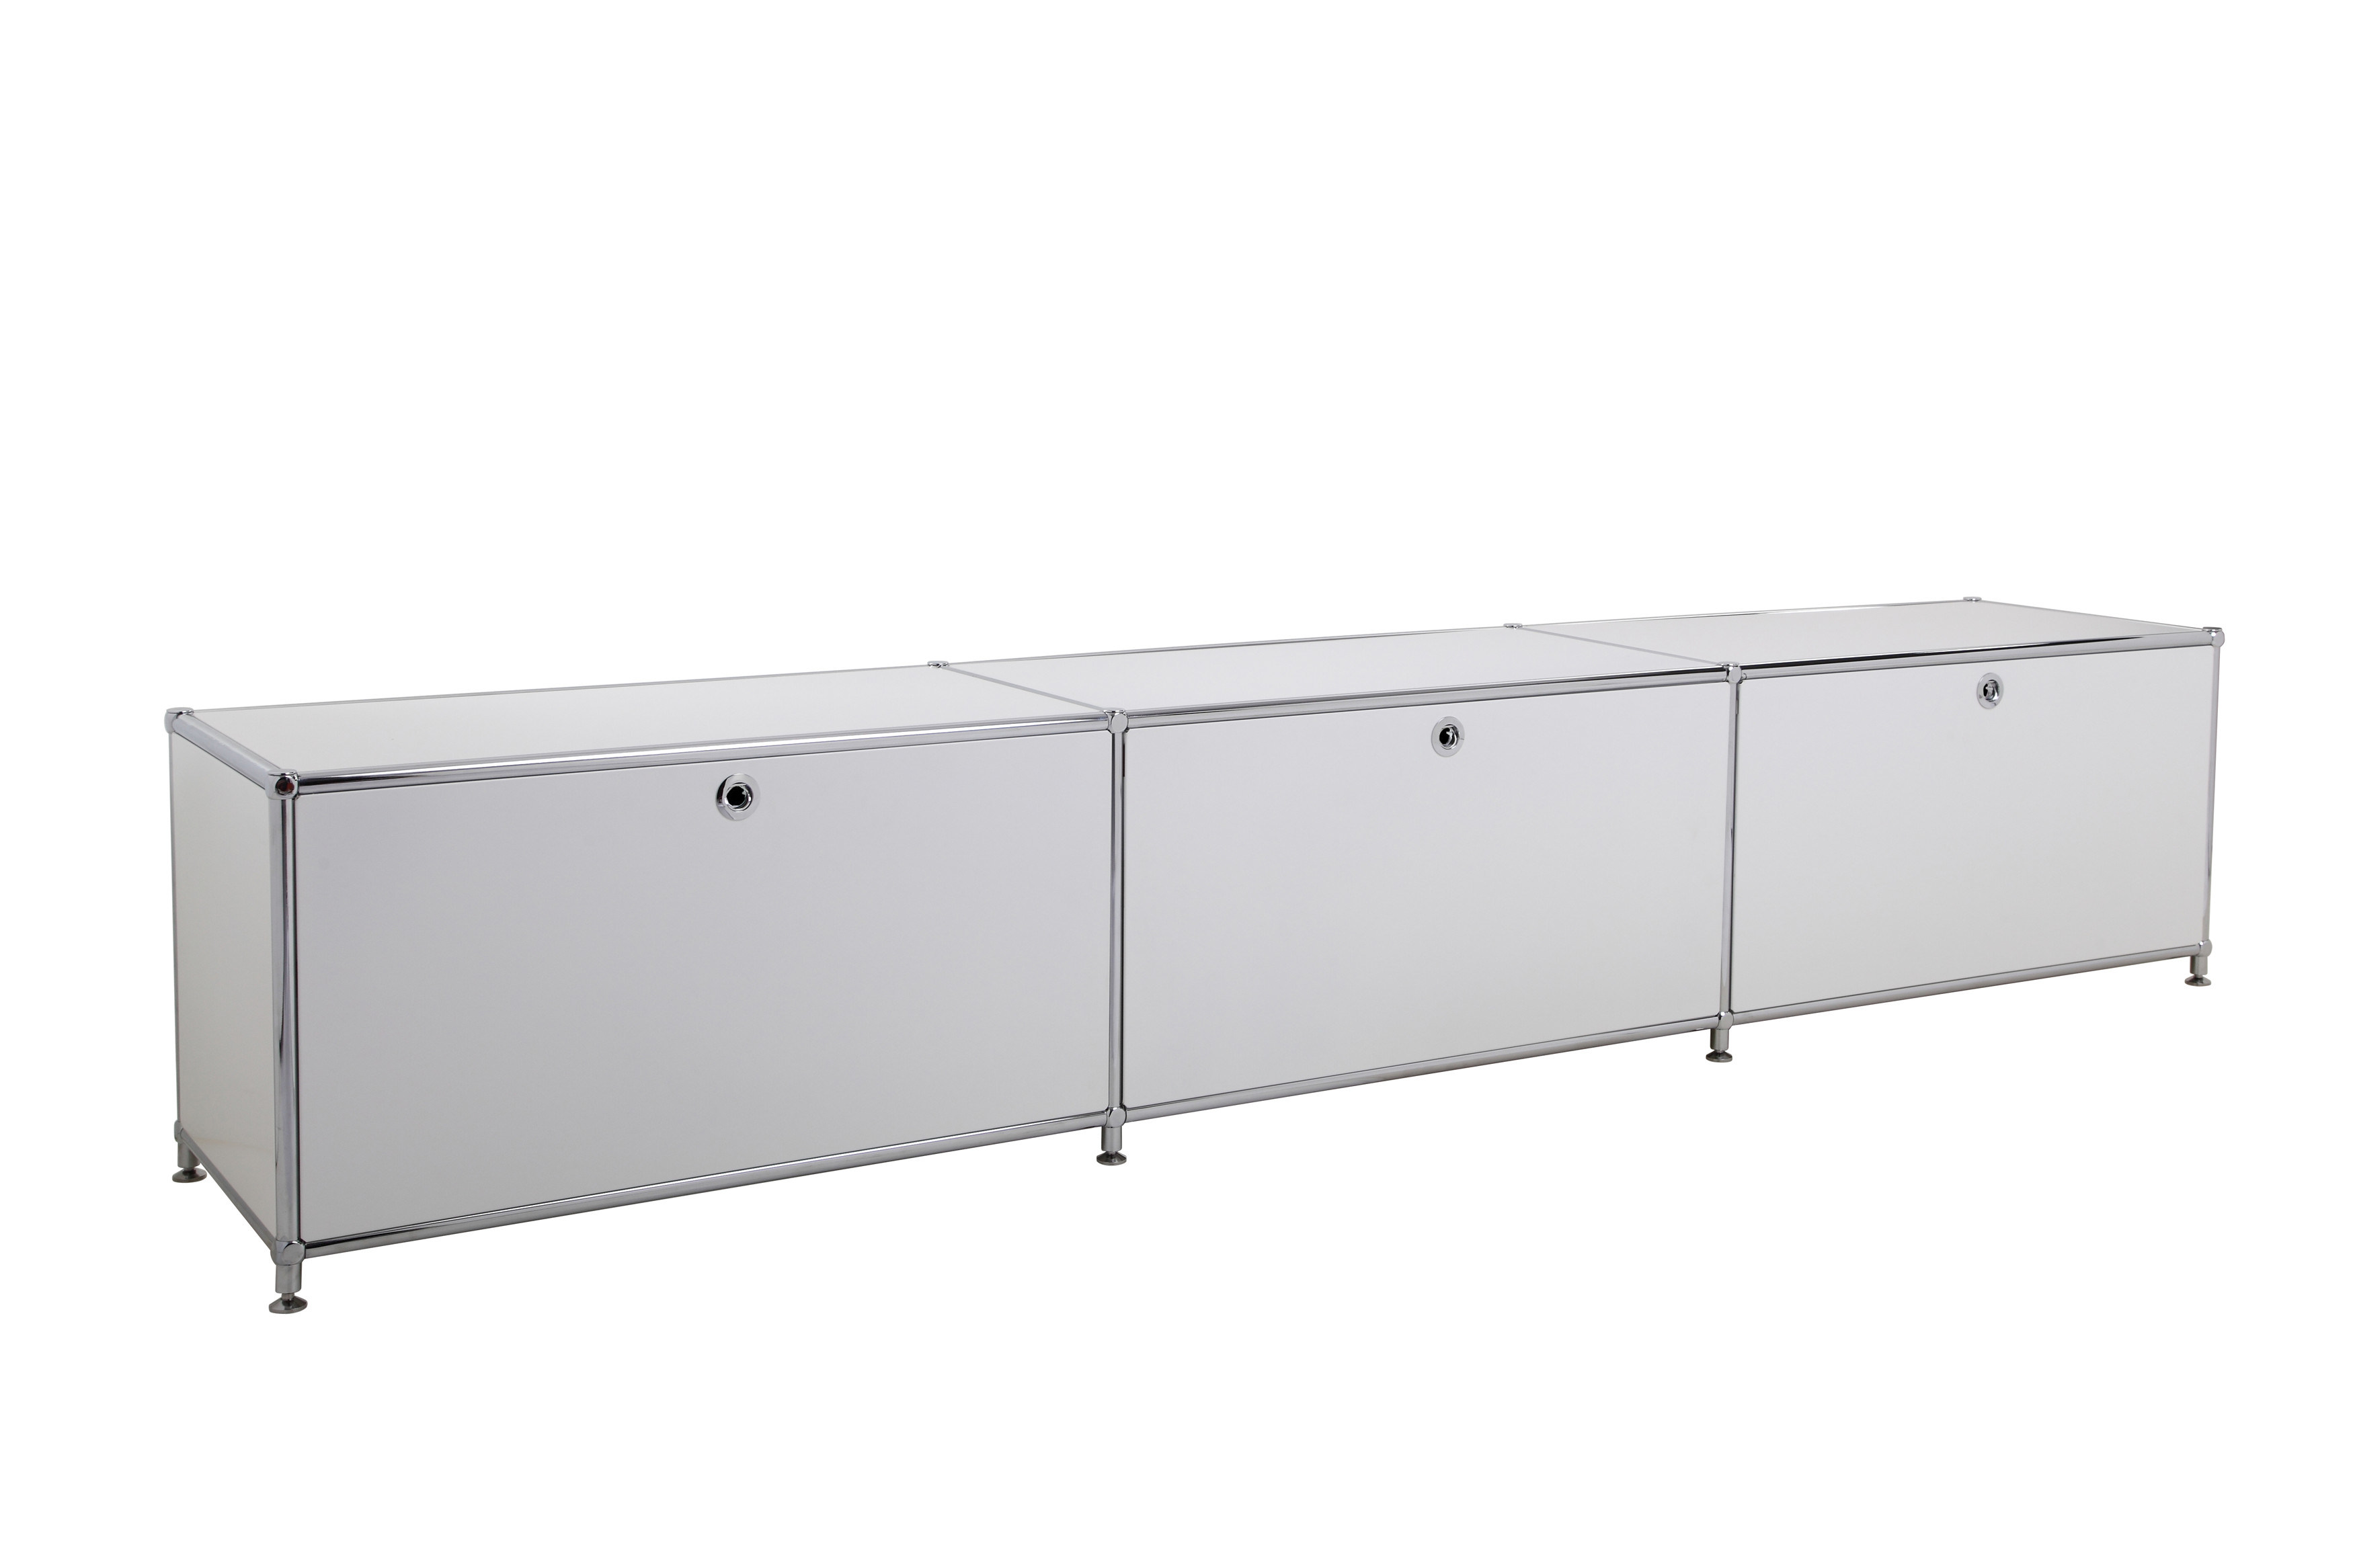 Quality Mobile Iron Office Furniture Modular Lateral Office Steel Filing Cabinet